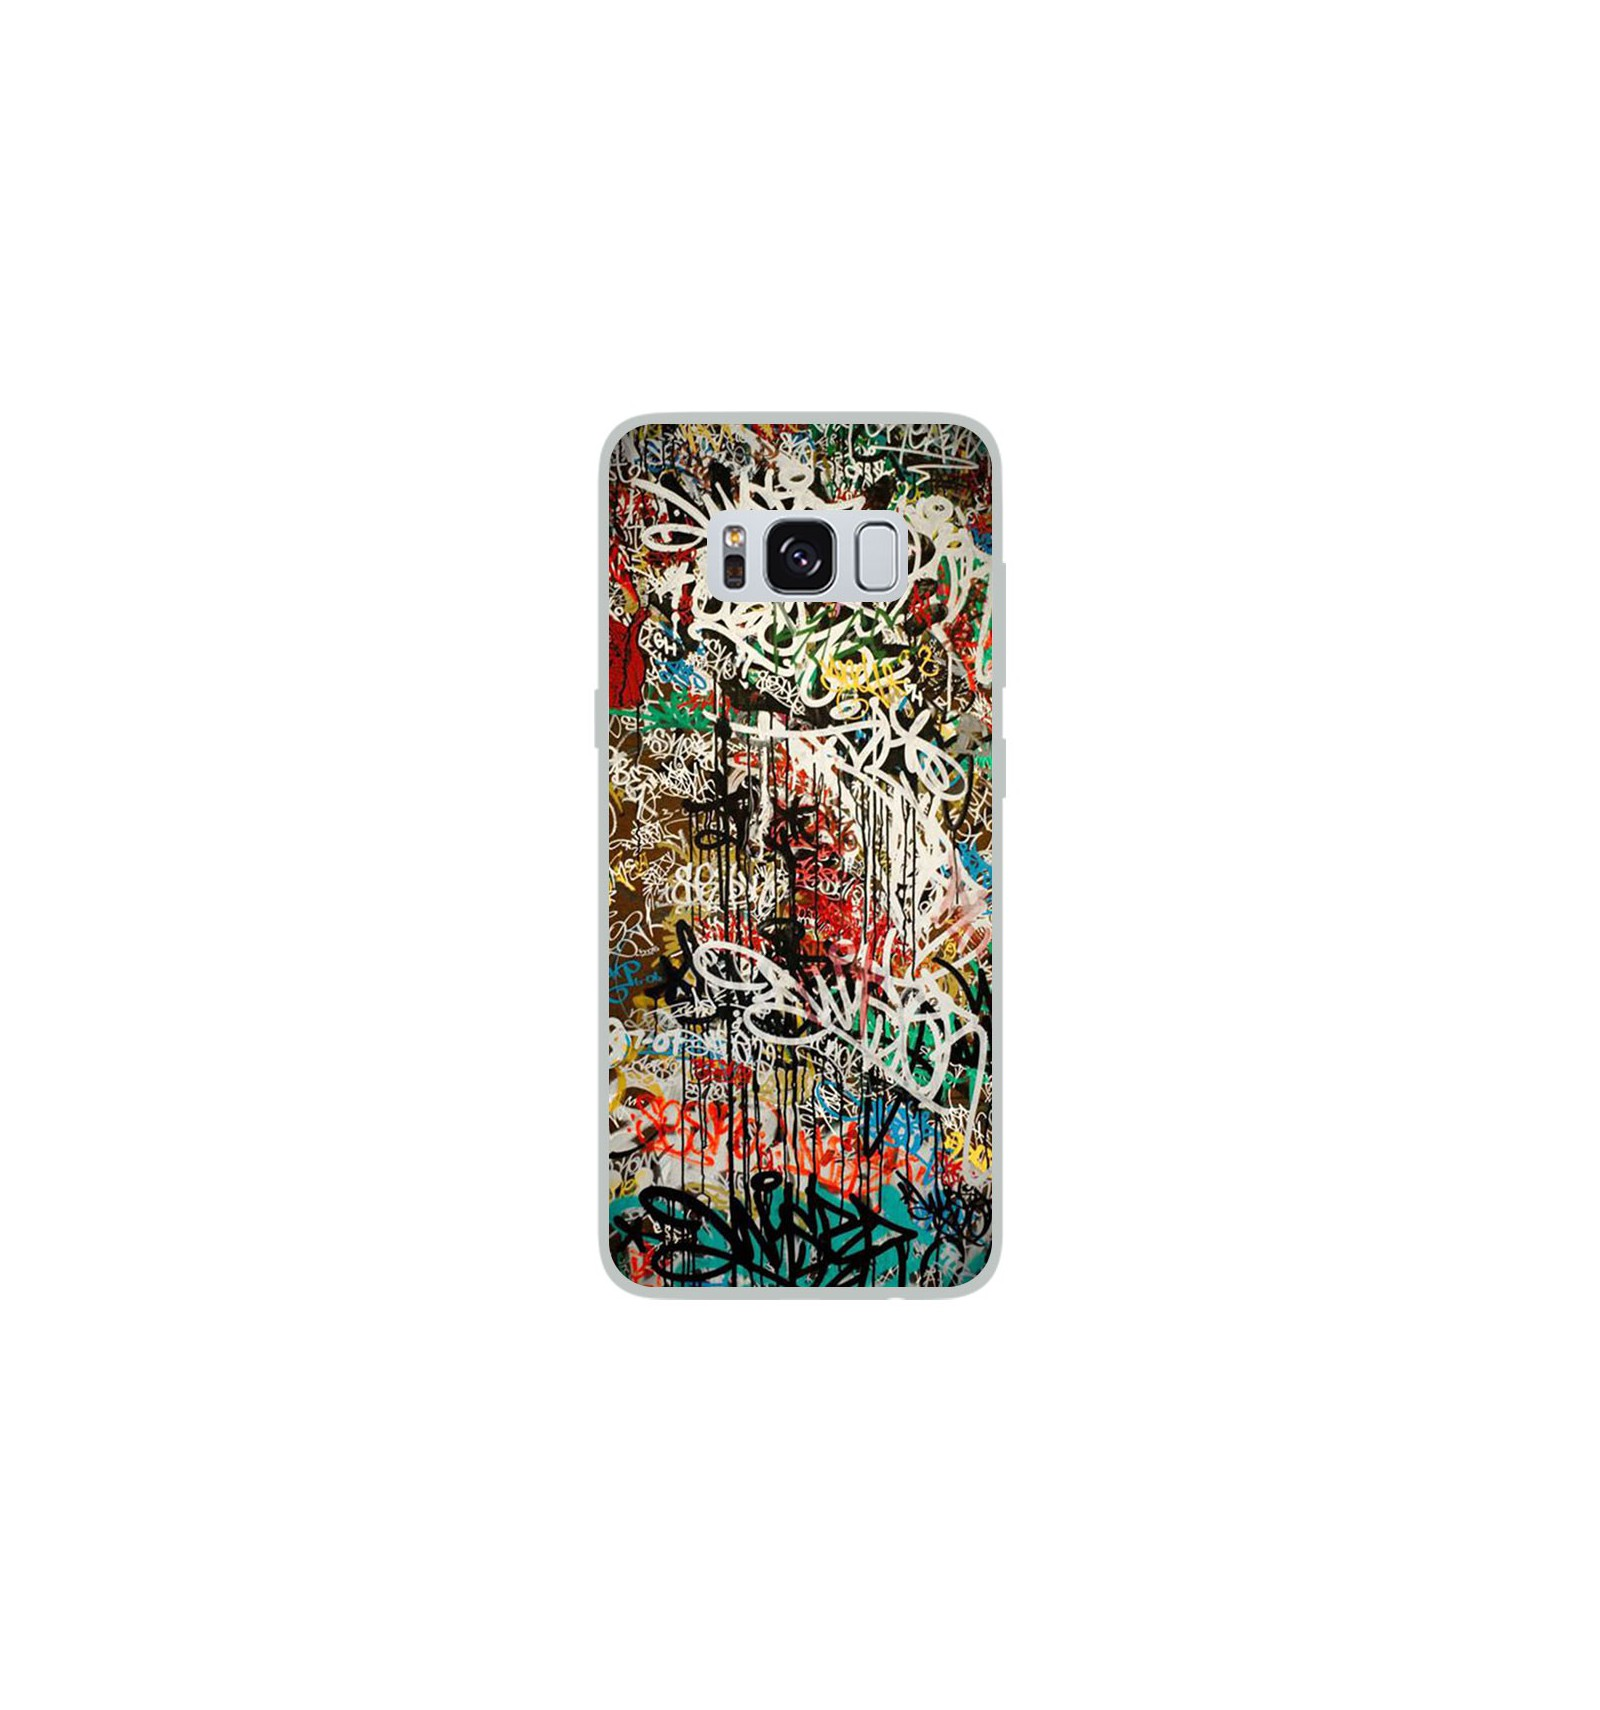 coque en silicone samsung galaxy s8 graffiti 1. Black Bedroom Furniture Sets. Home Design Ideas